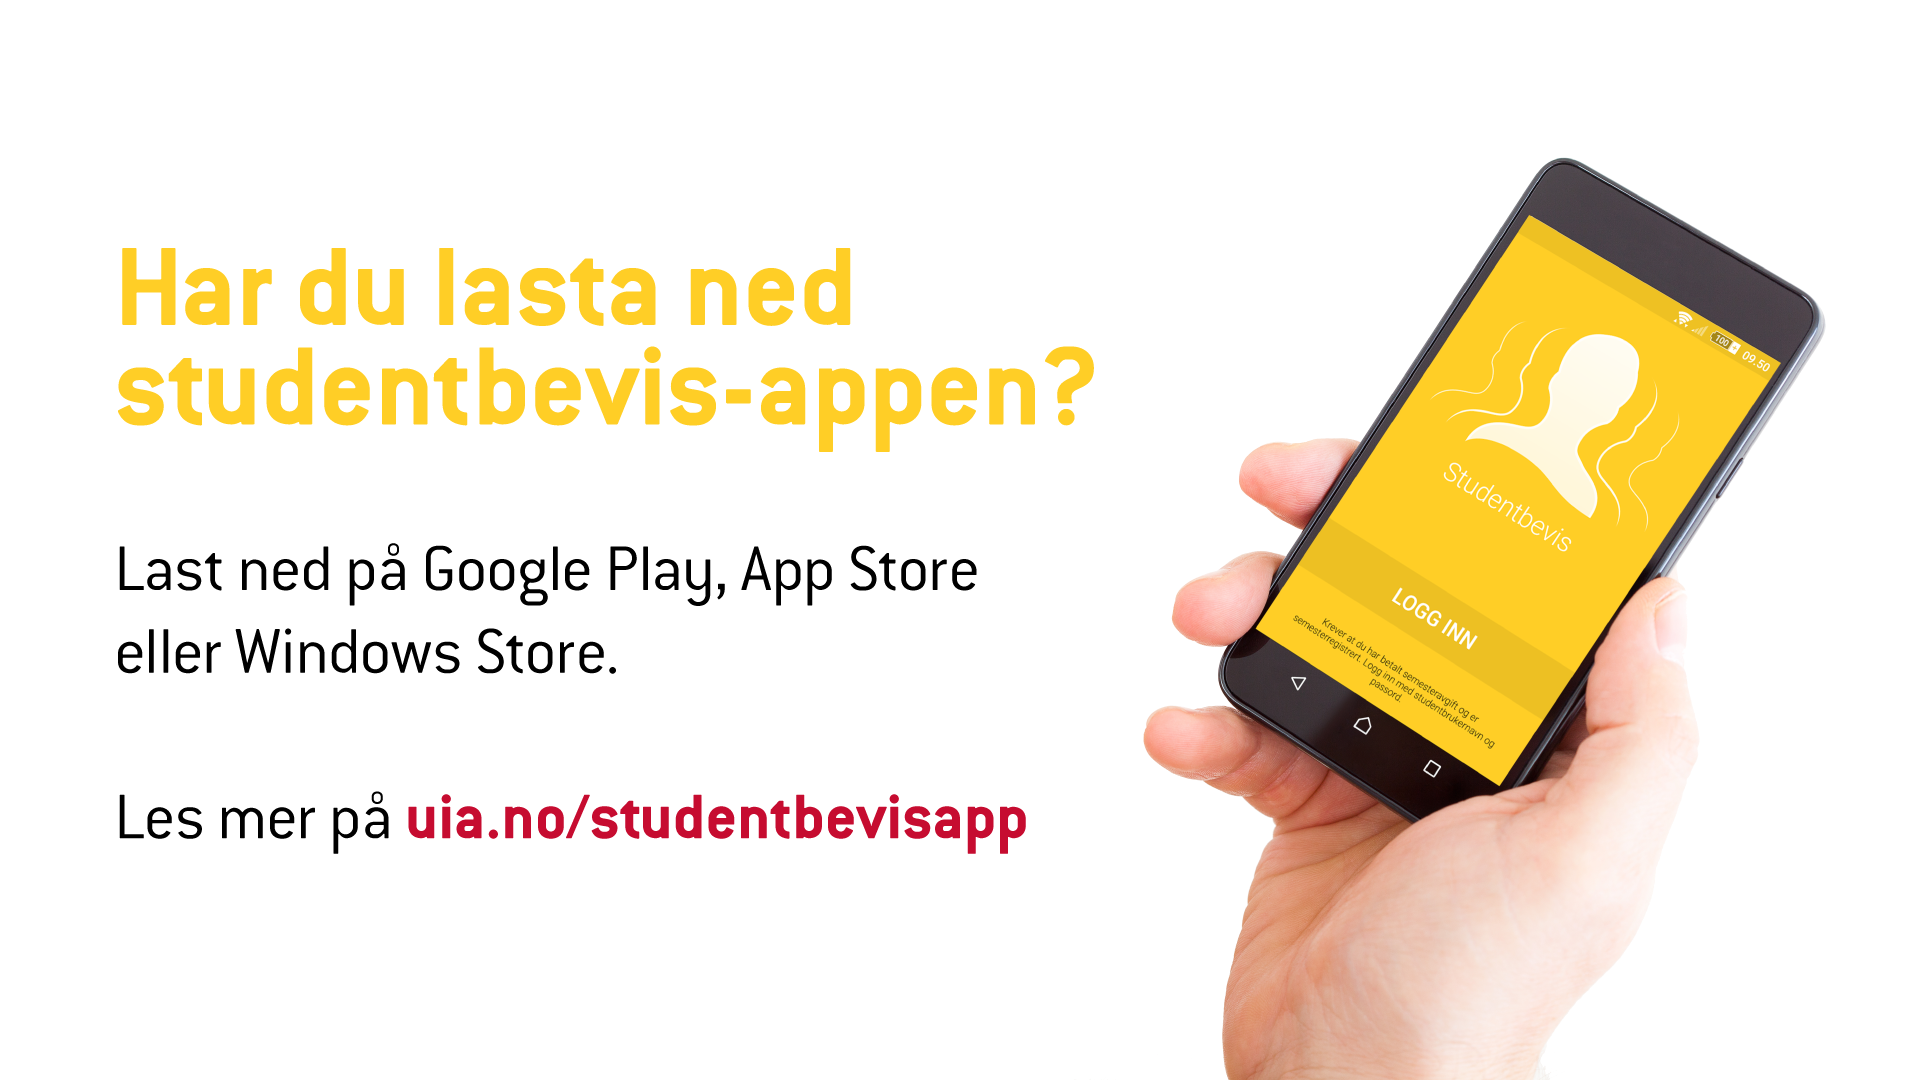 Studentbevisappen, last ned